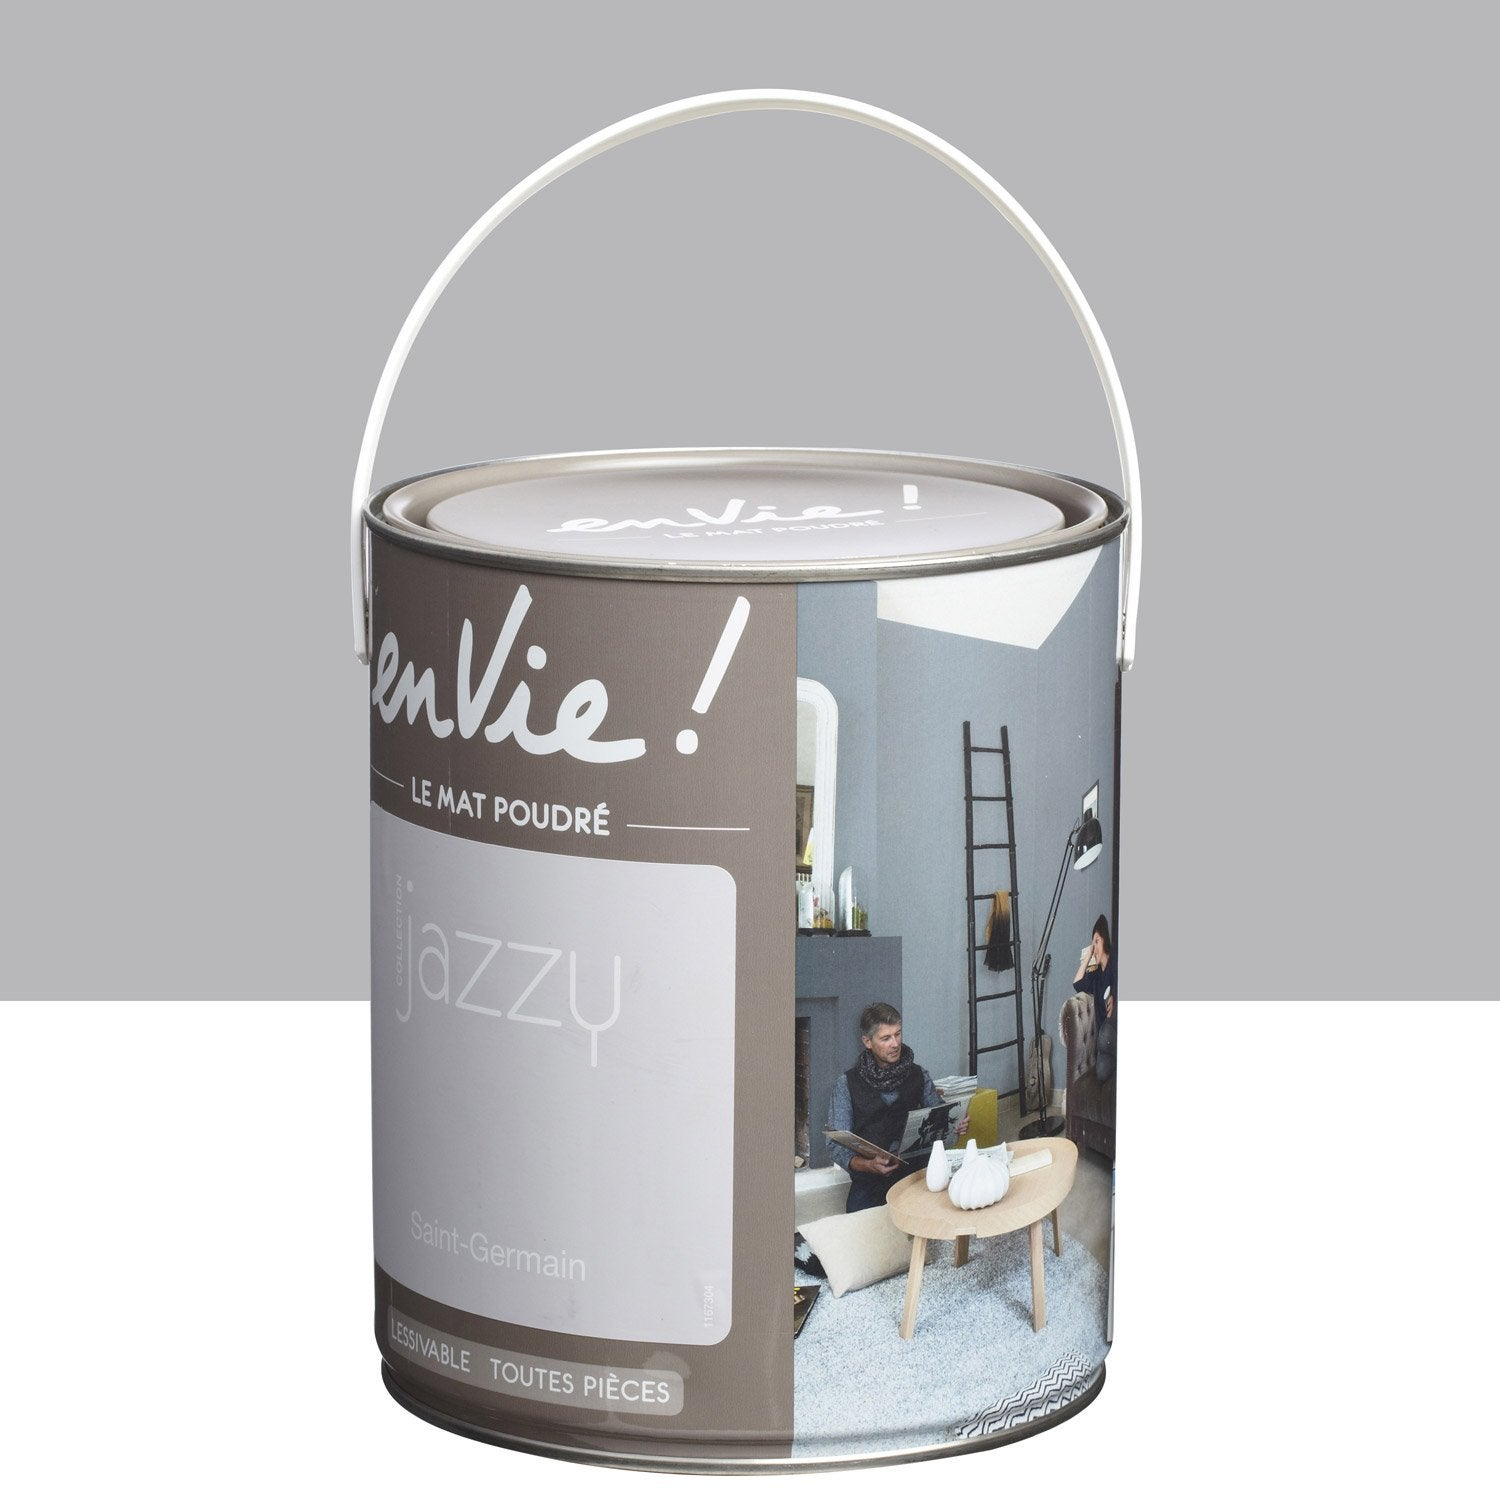 Peinture gris saint germain luxens envie collection jazzy 2 5 l leroy merlin - Peinture envie leroy merlin ...